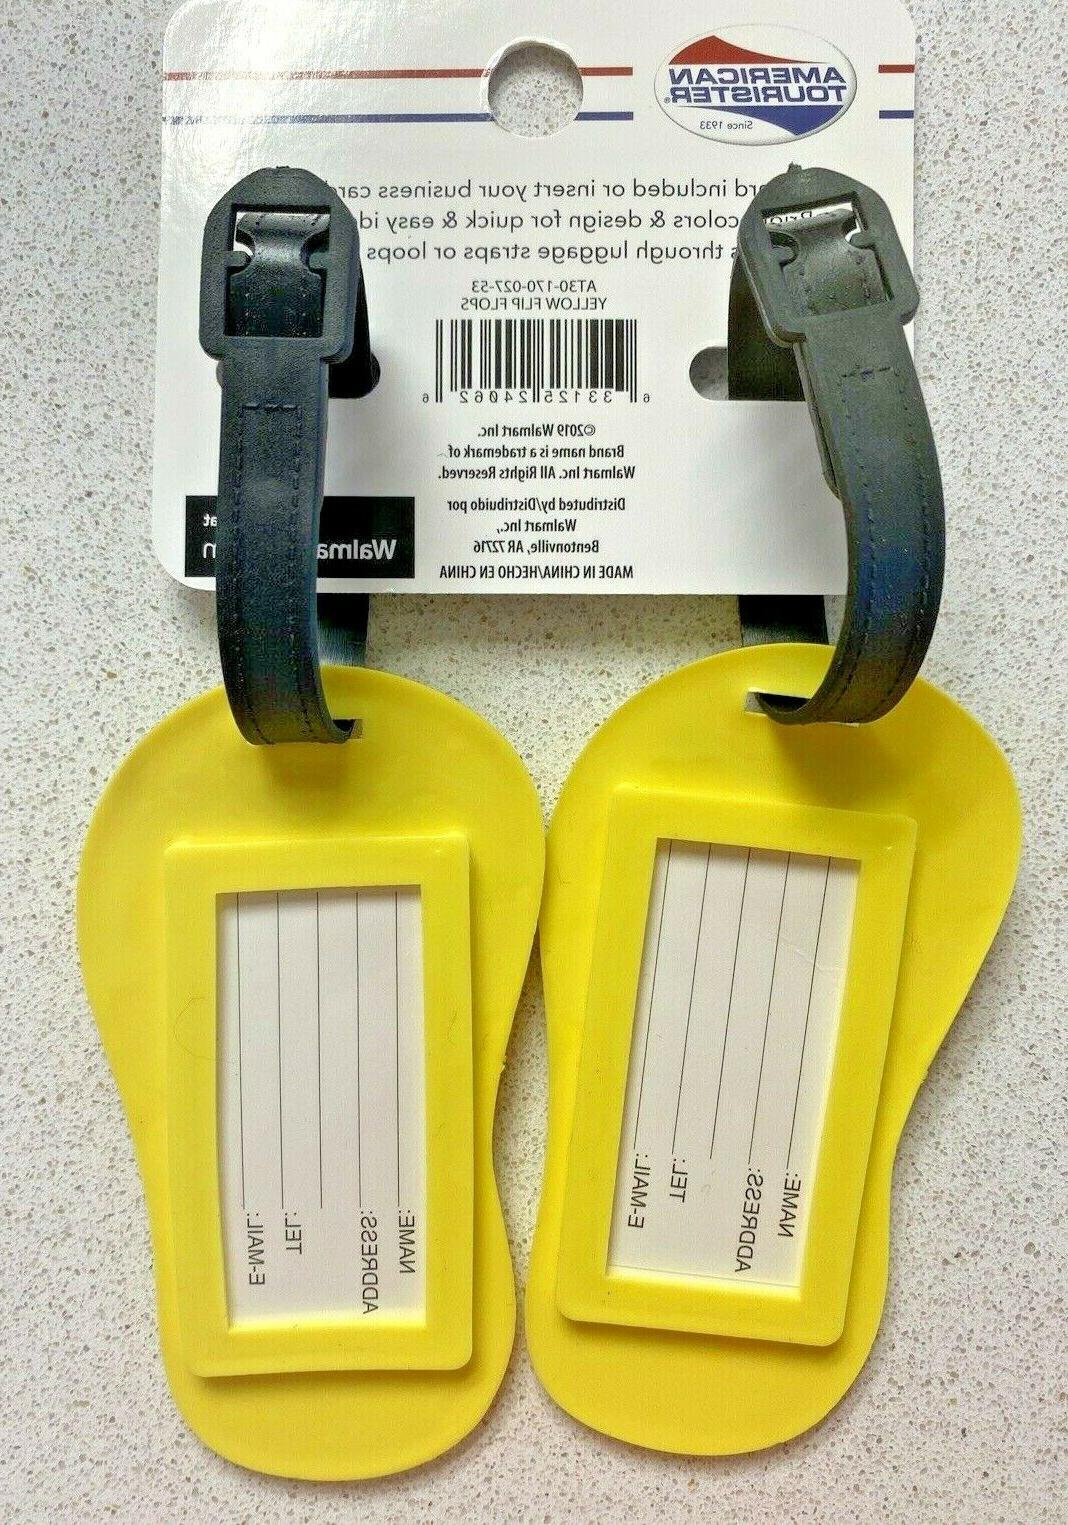 American Tourister Luggage - Flip Flops Shipping